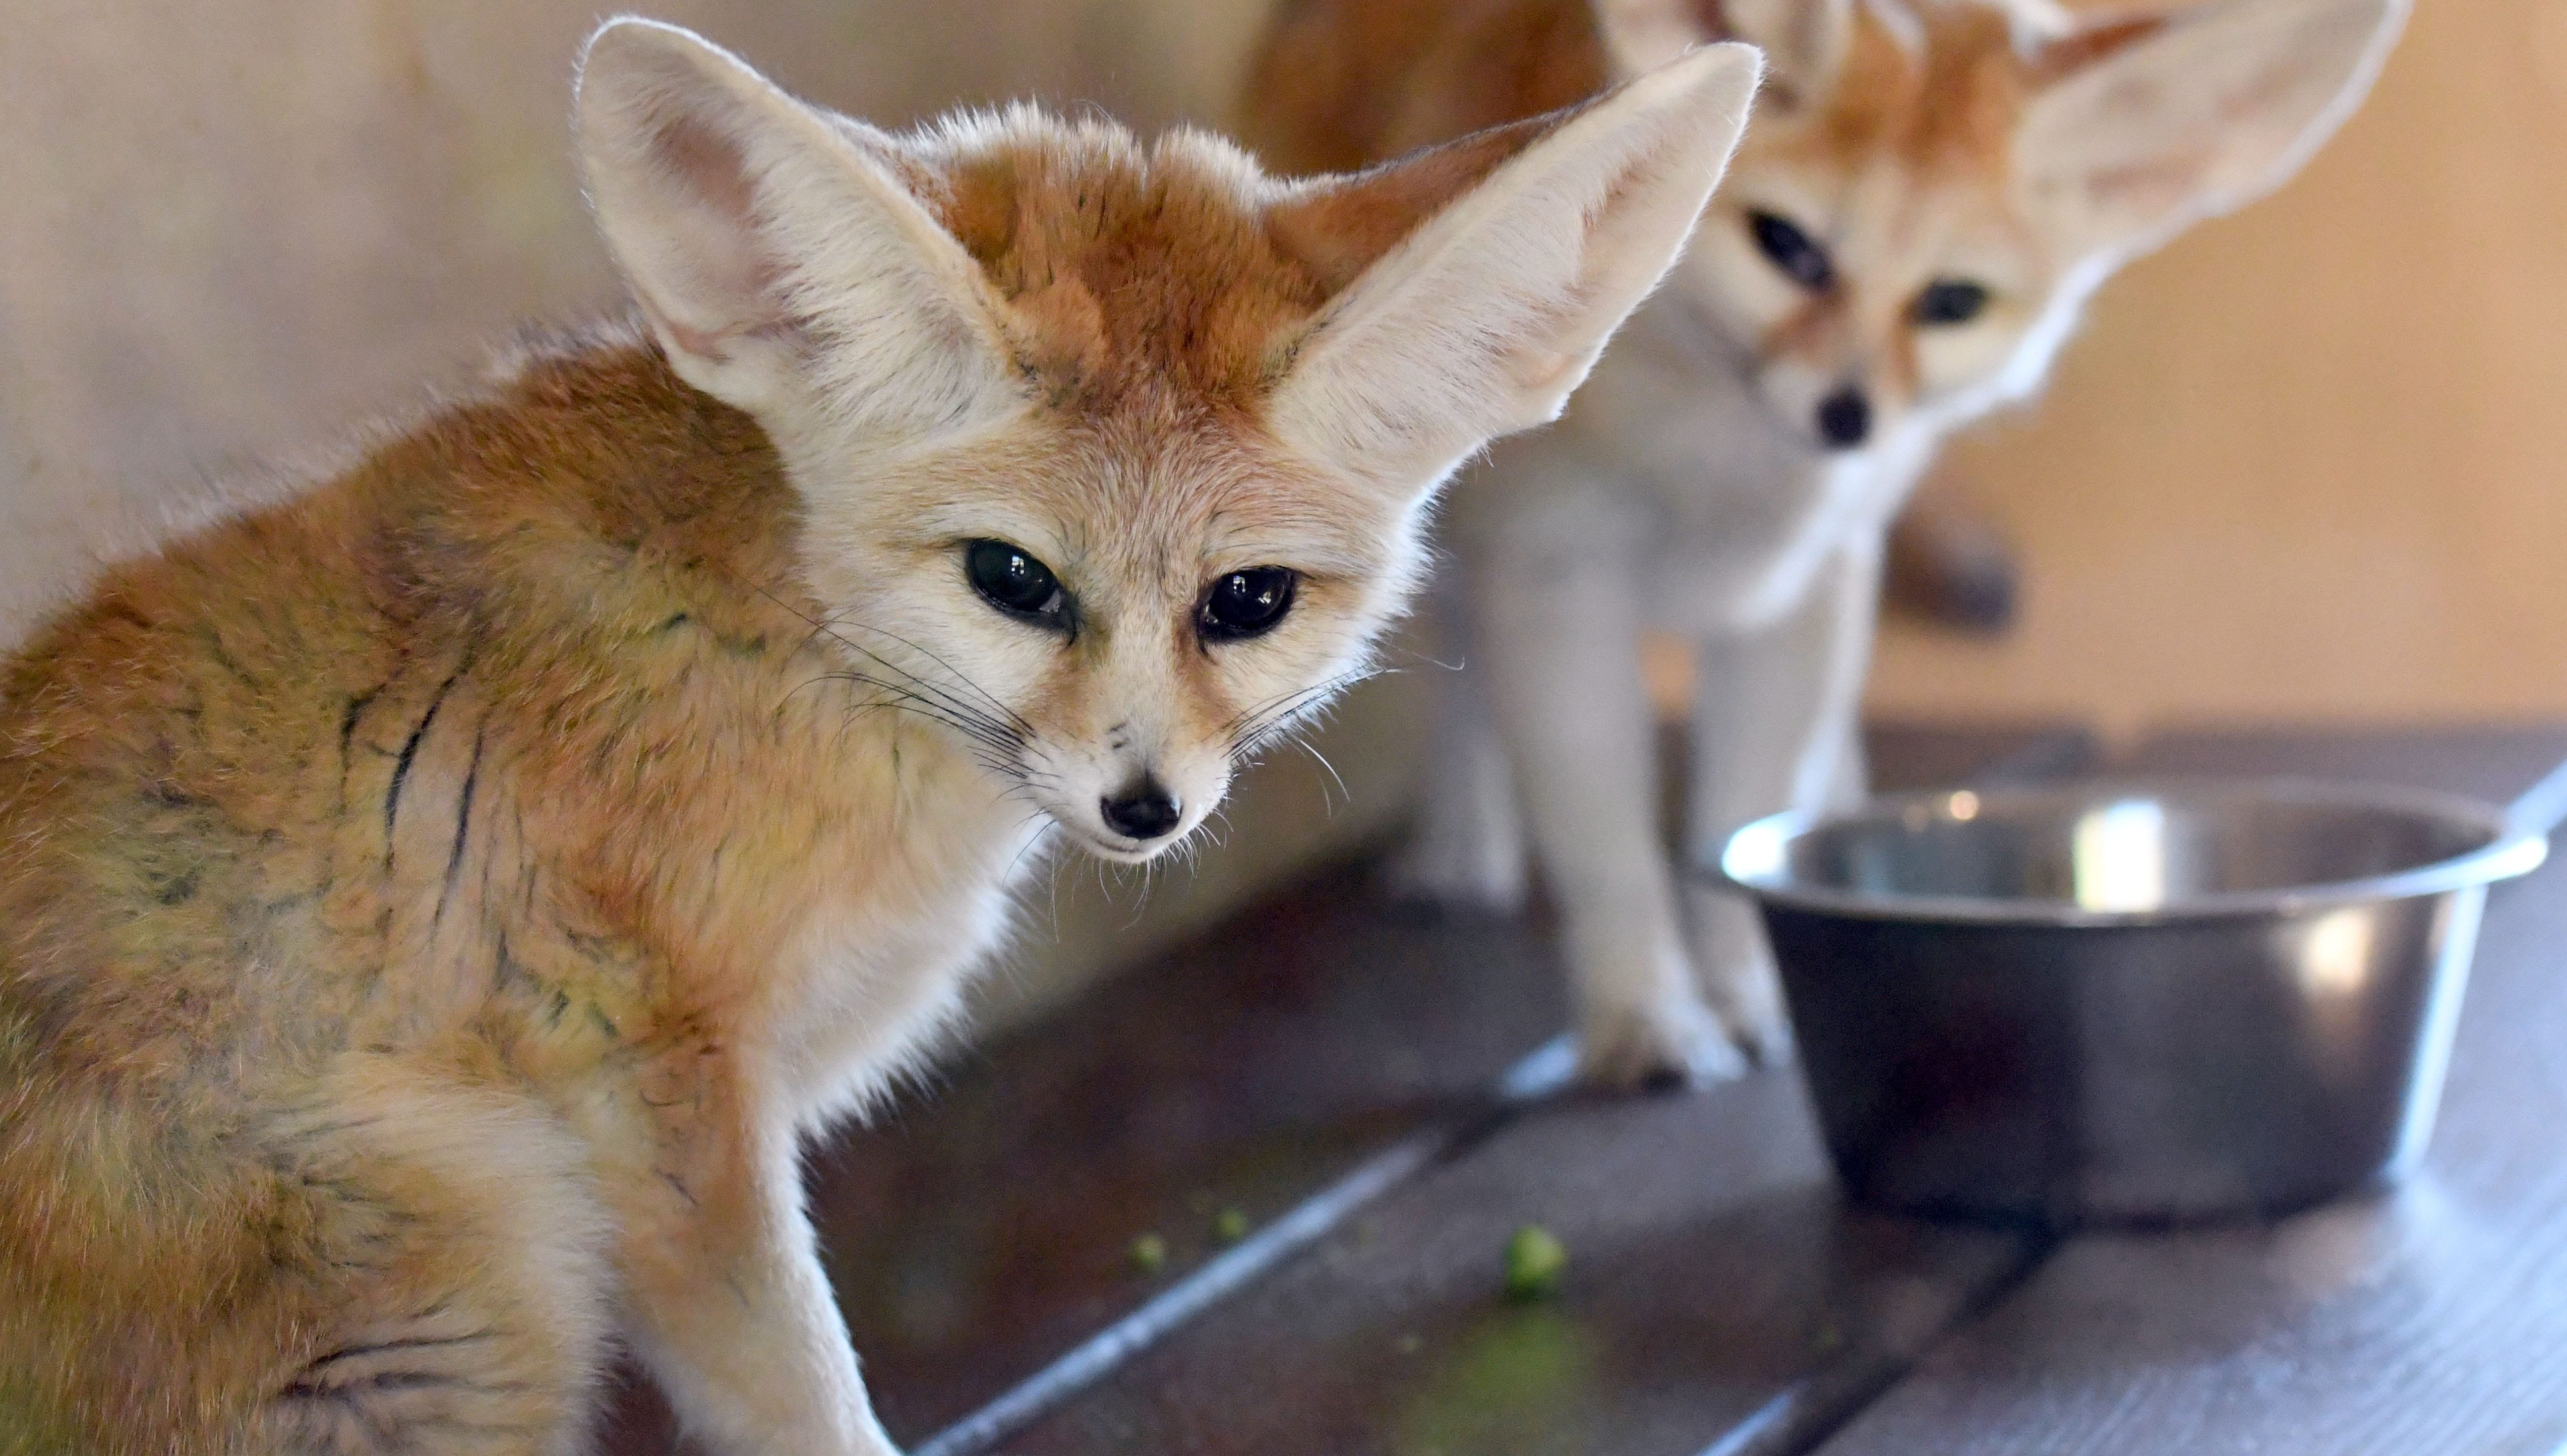 The Hattiesburg zoo added two fennec foxes to their exhibit on Tuesday, December 18, 2018. Five-year-old Biff and 9-year-old Chad are the two male foxes on display in a small building in the Africa exhibit where visitors can watch them through two glass windows.